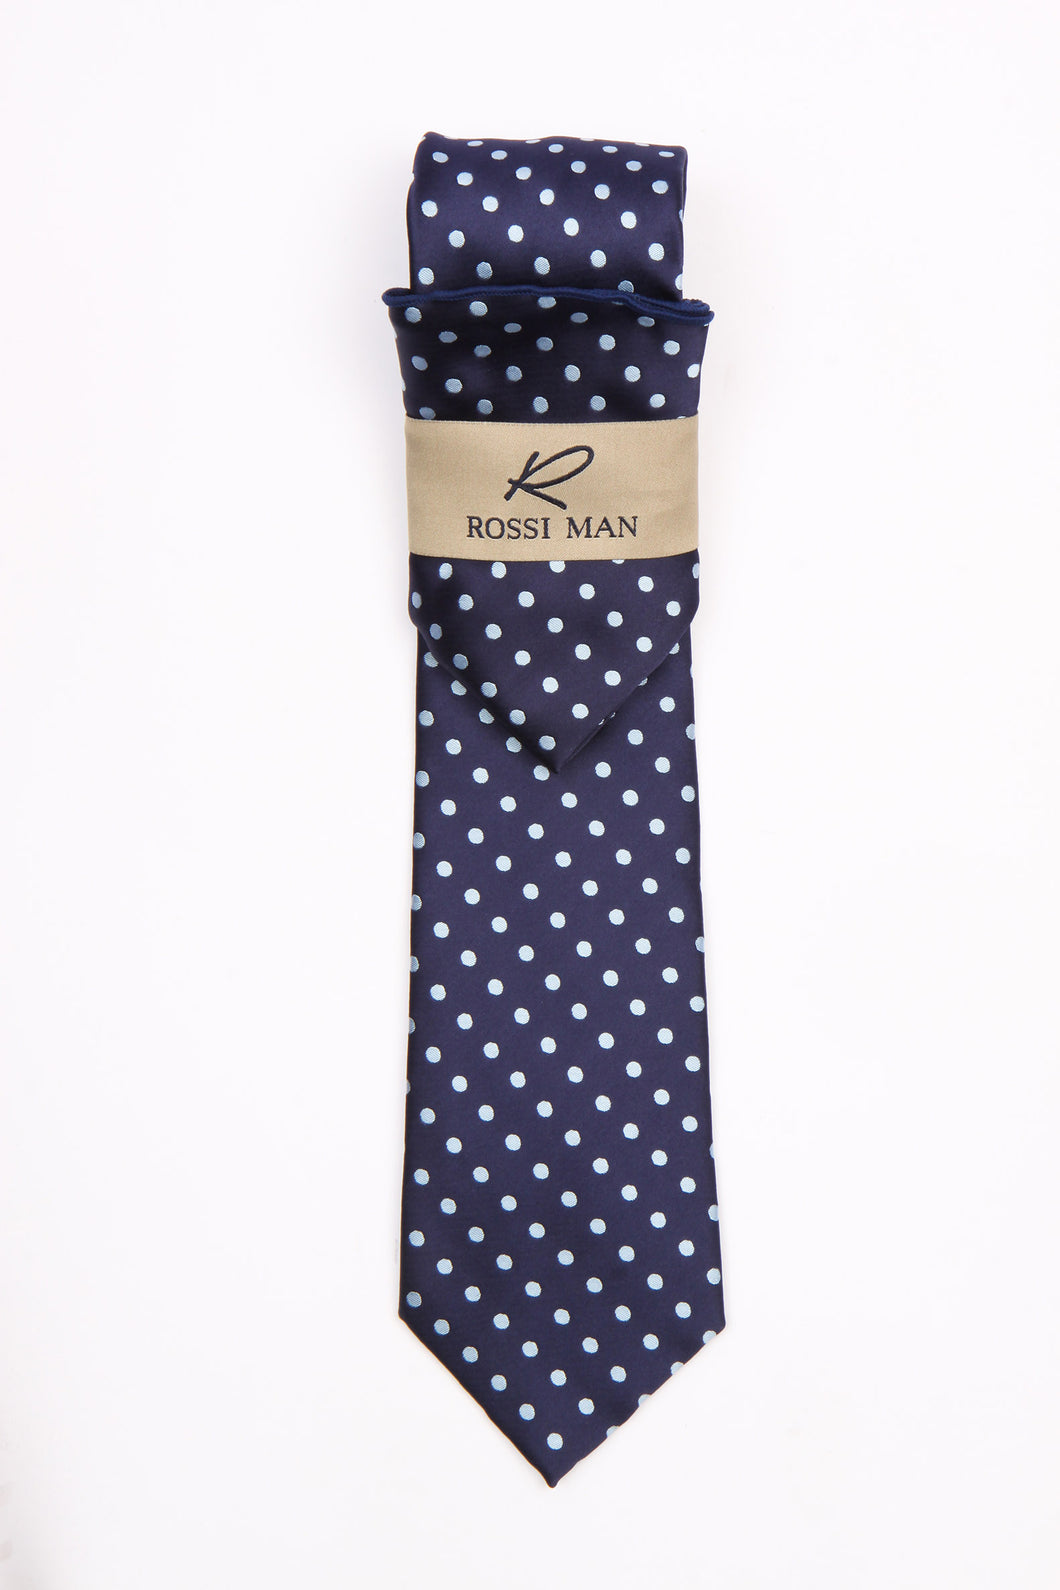 Rossi Man Tie and Pocket Round - RMR662-8